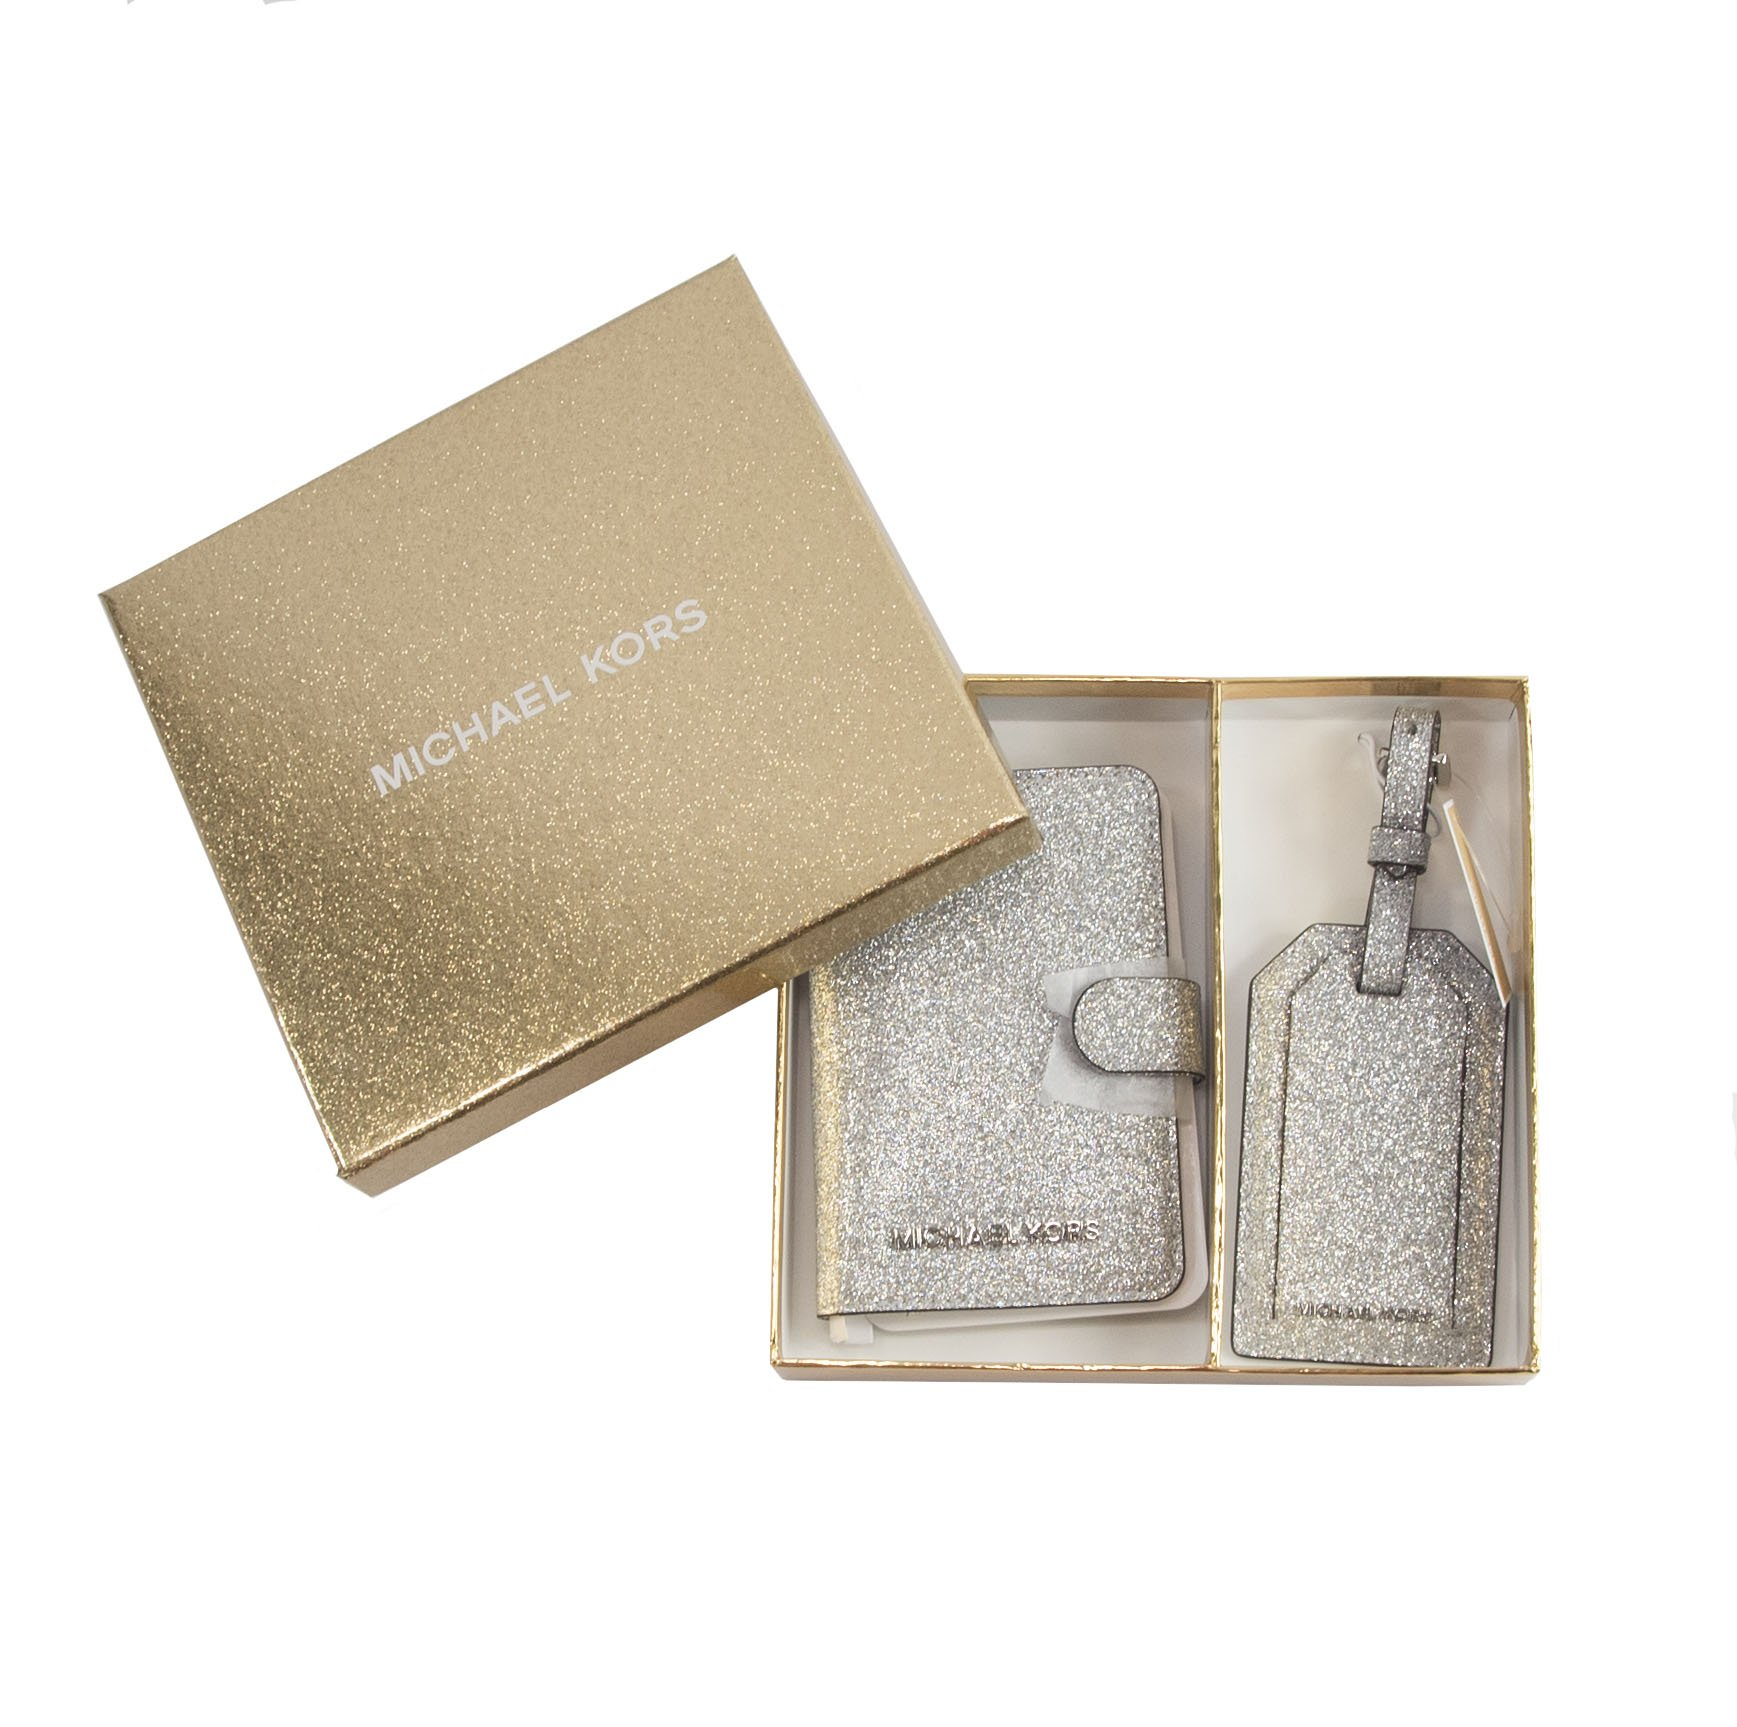 Michael Kors Silver Glittered Leather Bifold Wallet and Luggage Tag Set